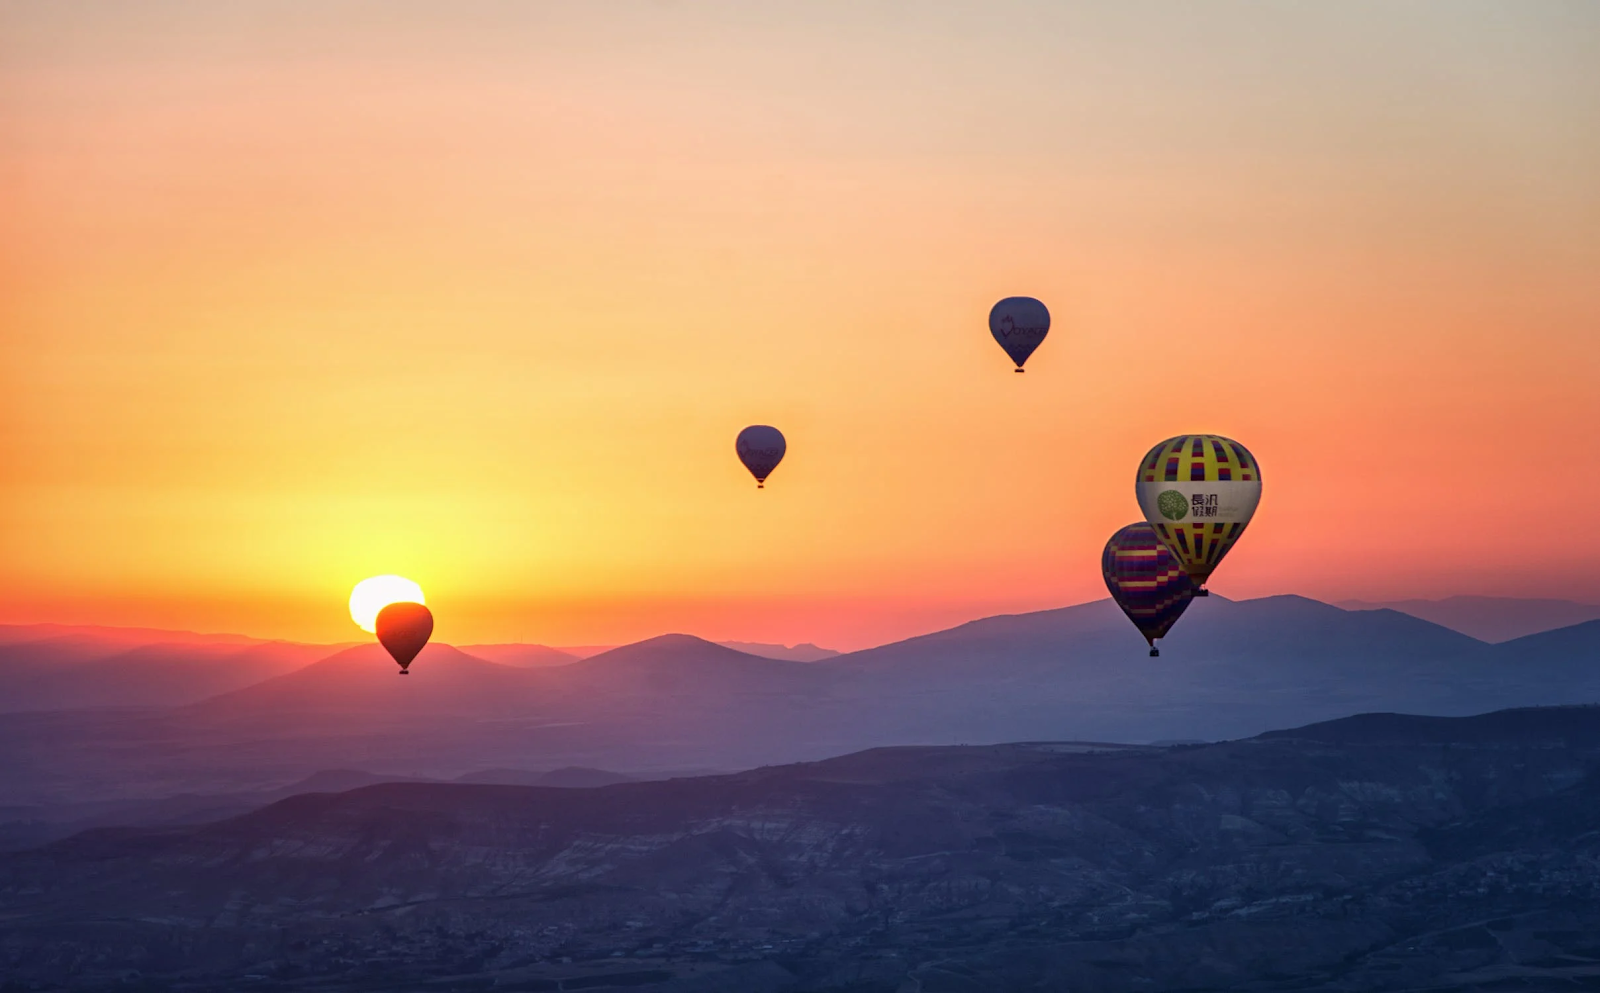 An image of hot air balloons for Gibboney's Aerostation.